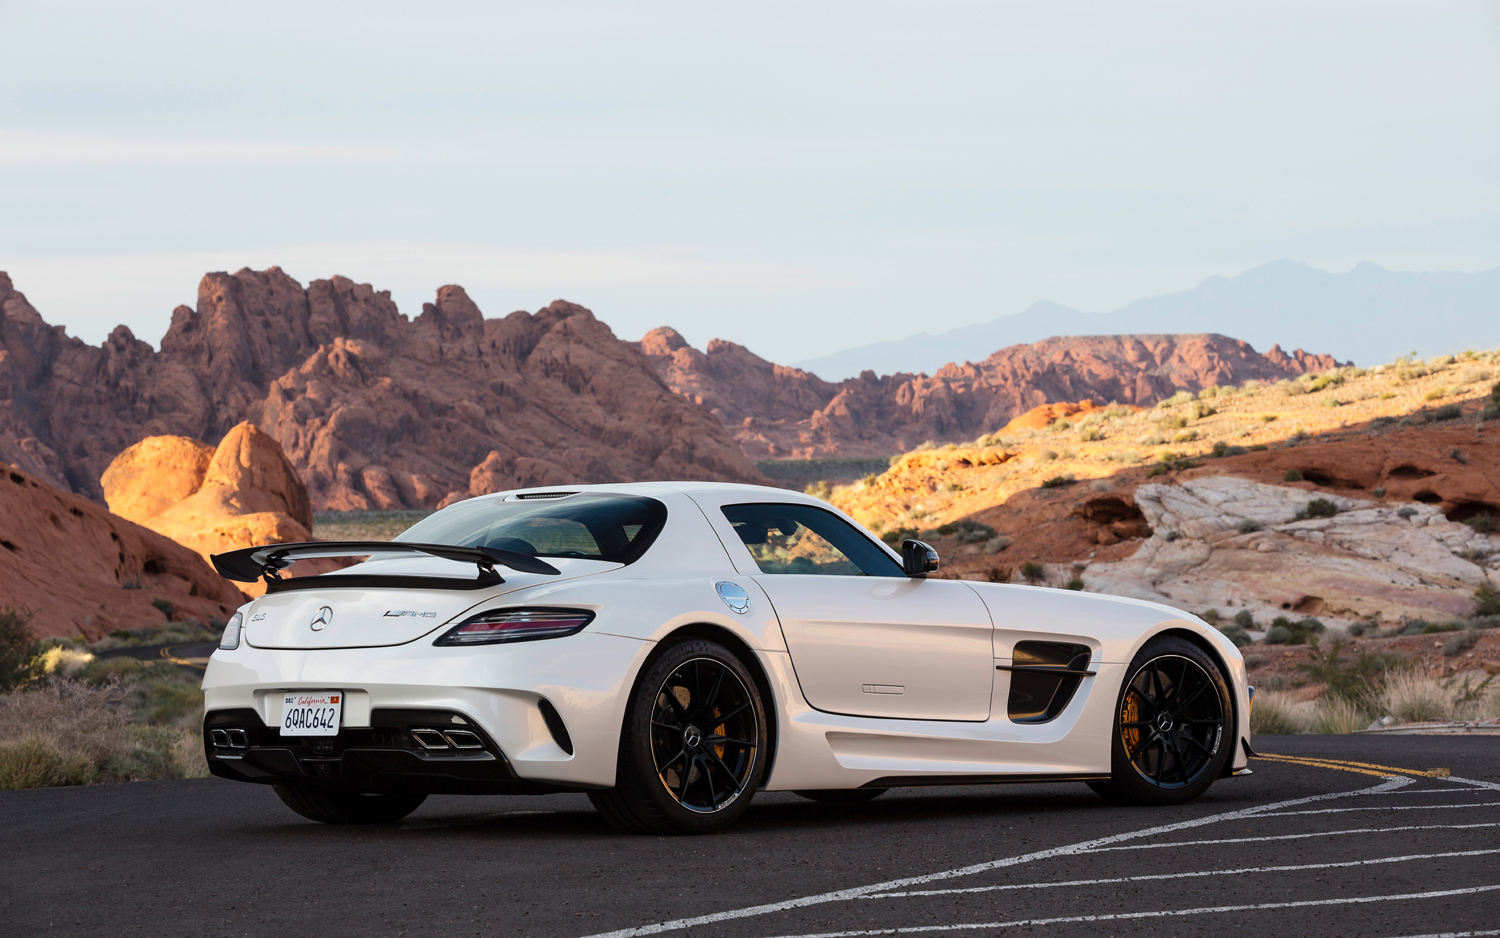 2014-Mercedes-Benz-SLS-AMG-Black-Series-rear-three-quarters